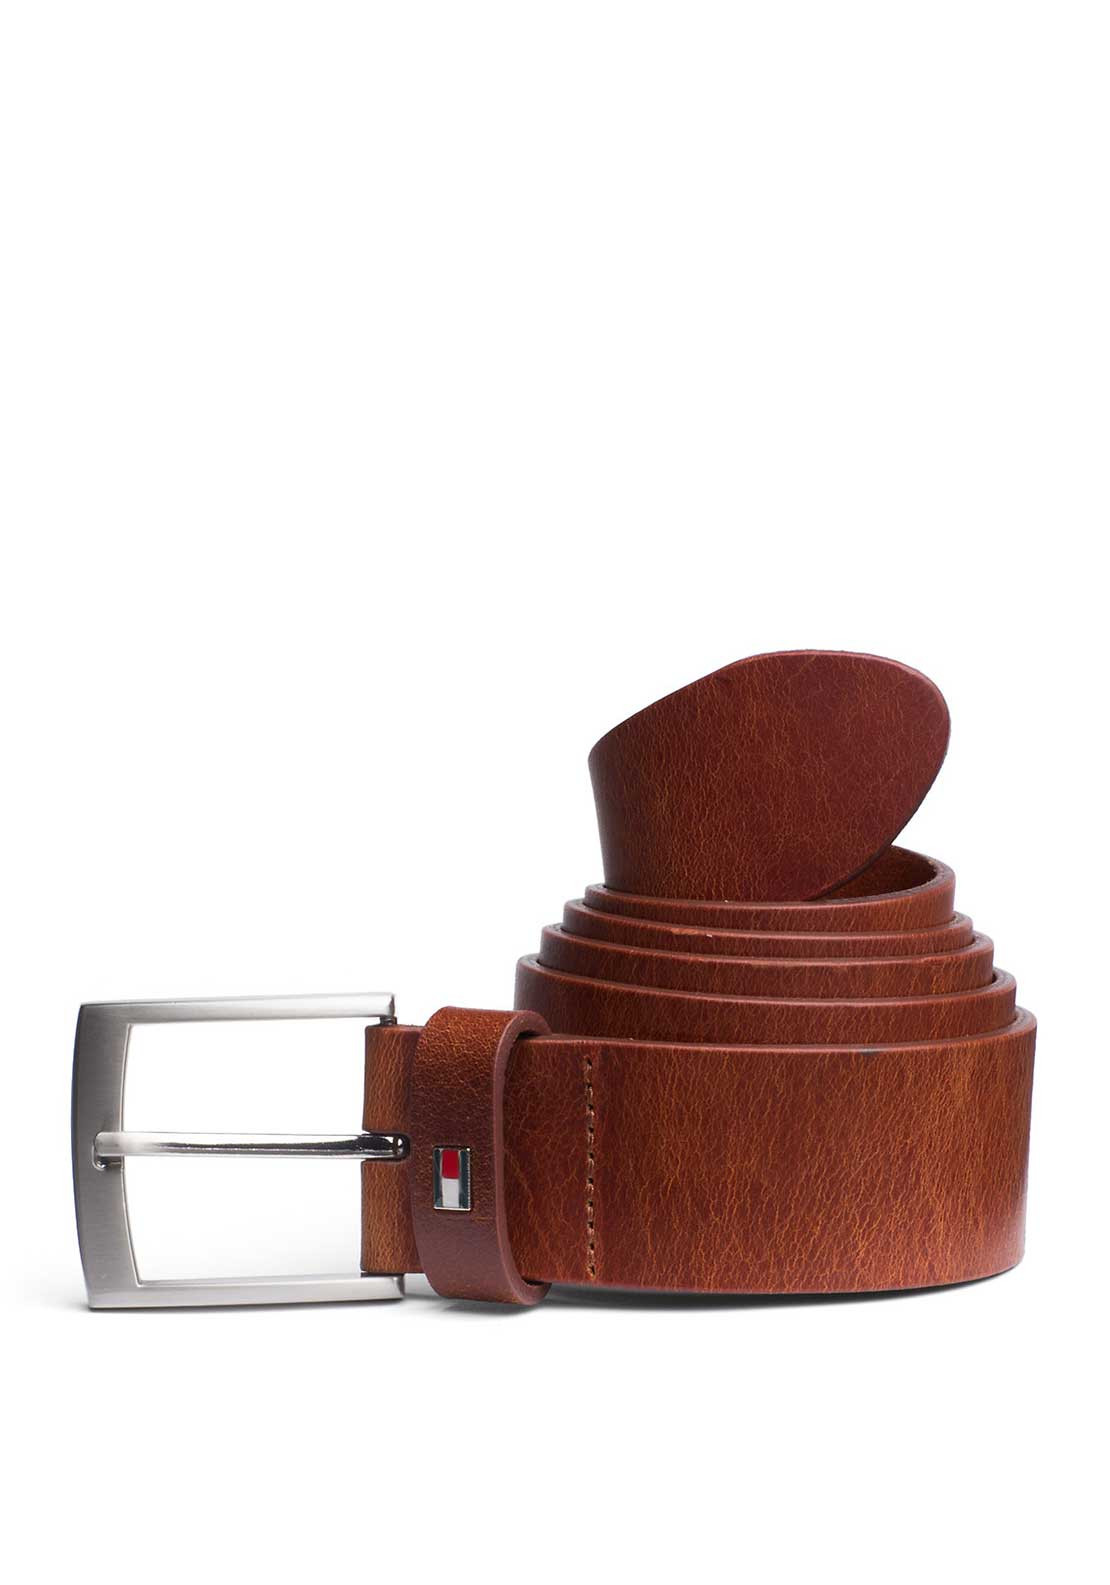 Tommy Hilfiger Mens Denton Belt, Tan